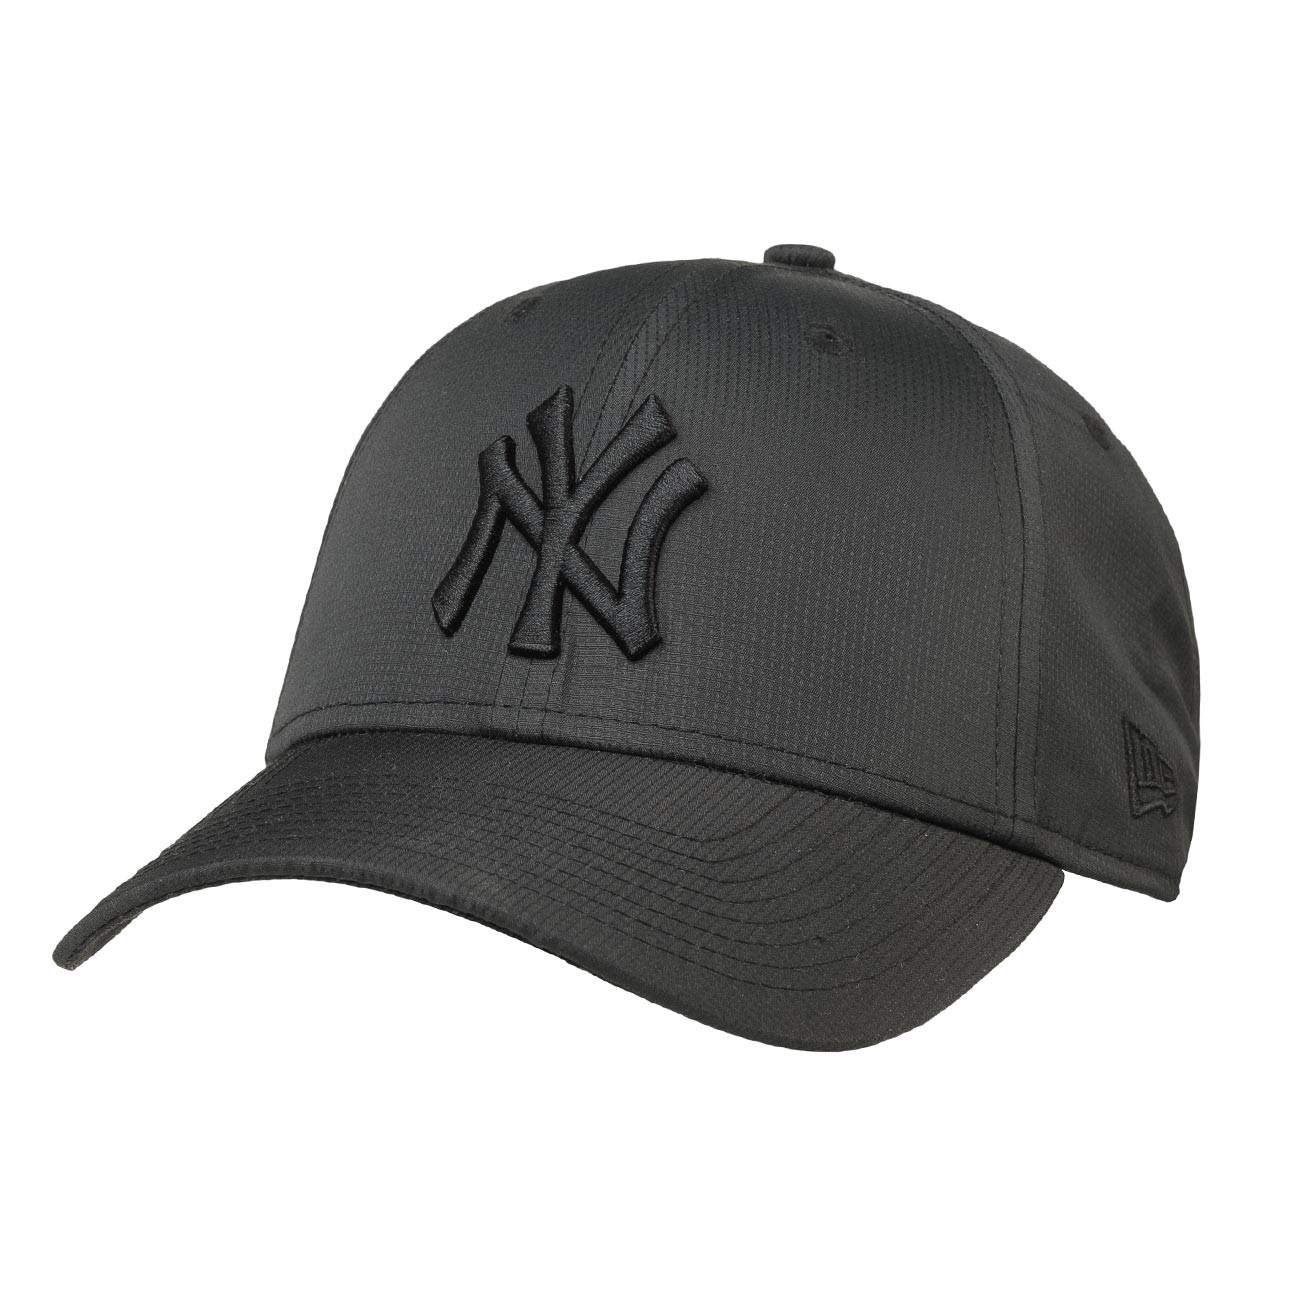 Kšiltovka New Era New York Yankees 9Forty black